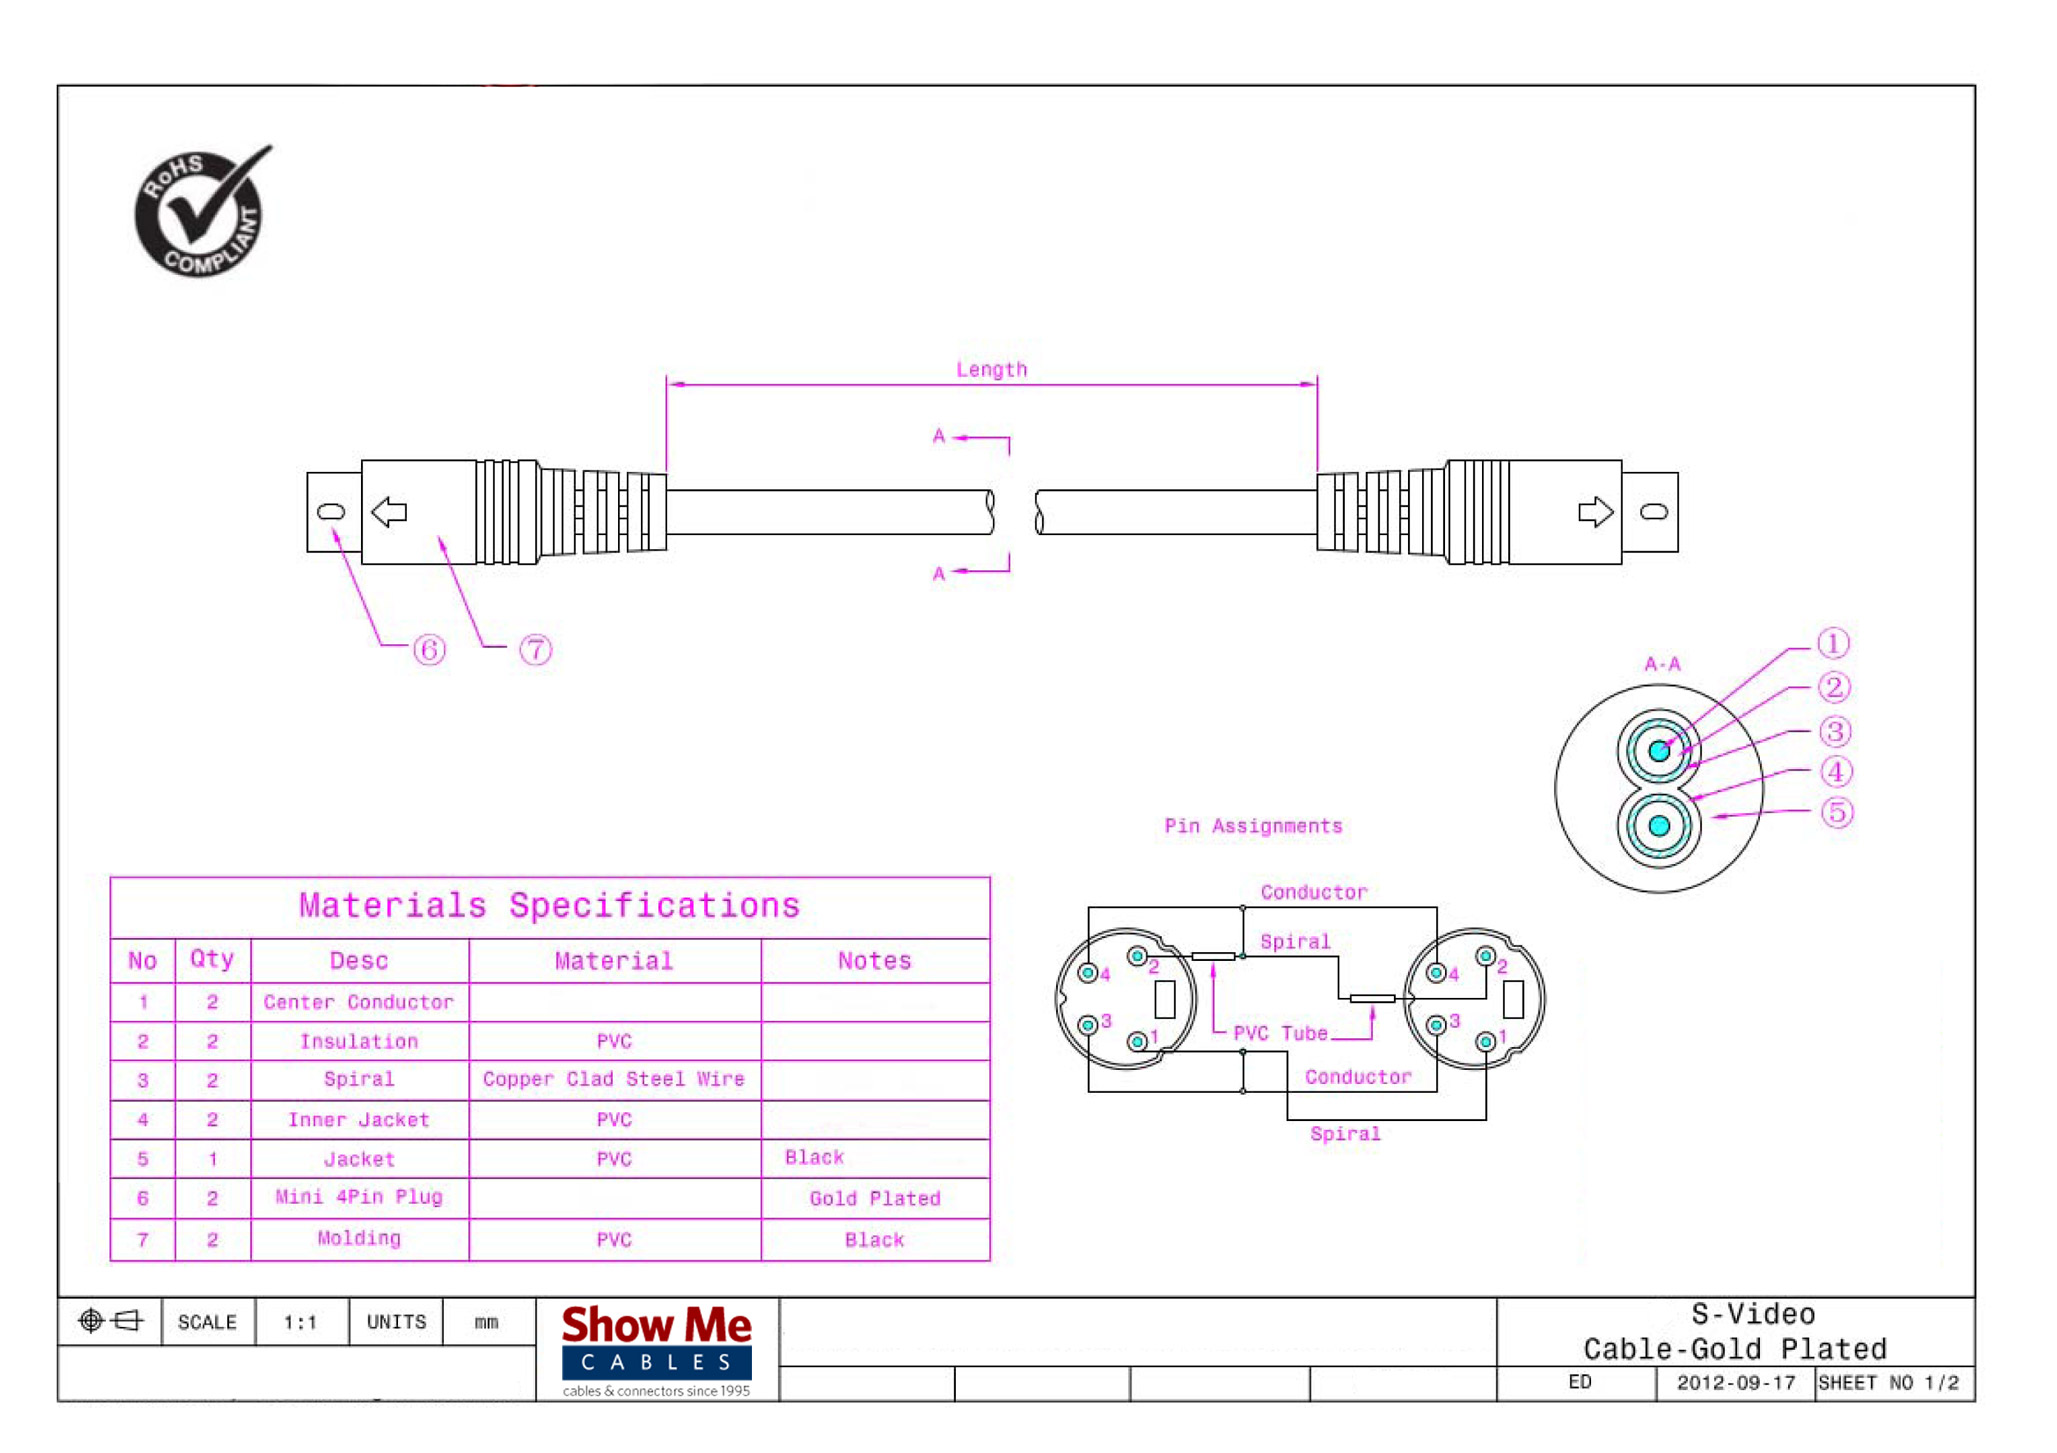 Pin S Video Wiring Diagram on 4 pin voltage, 4 pin relay, 110cc wire harness diagram, 4 pin plug, 4 pin sensor diagram, 4 pin wire harness, 4 pin socket diagram, and 4 pin input diagram, 4 pin switch, vga pinout diagram, 4 pin harness diagram, 4 pin trailer harness, 4 pin round trailer wiring, 4 pin fan diagram, 4 pin wiring chart, 4 pin fuse, s-video pin diagram, 4 pin cable, 4 pin connector, 4 pin trailer diagram,